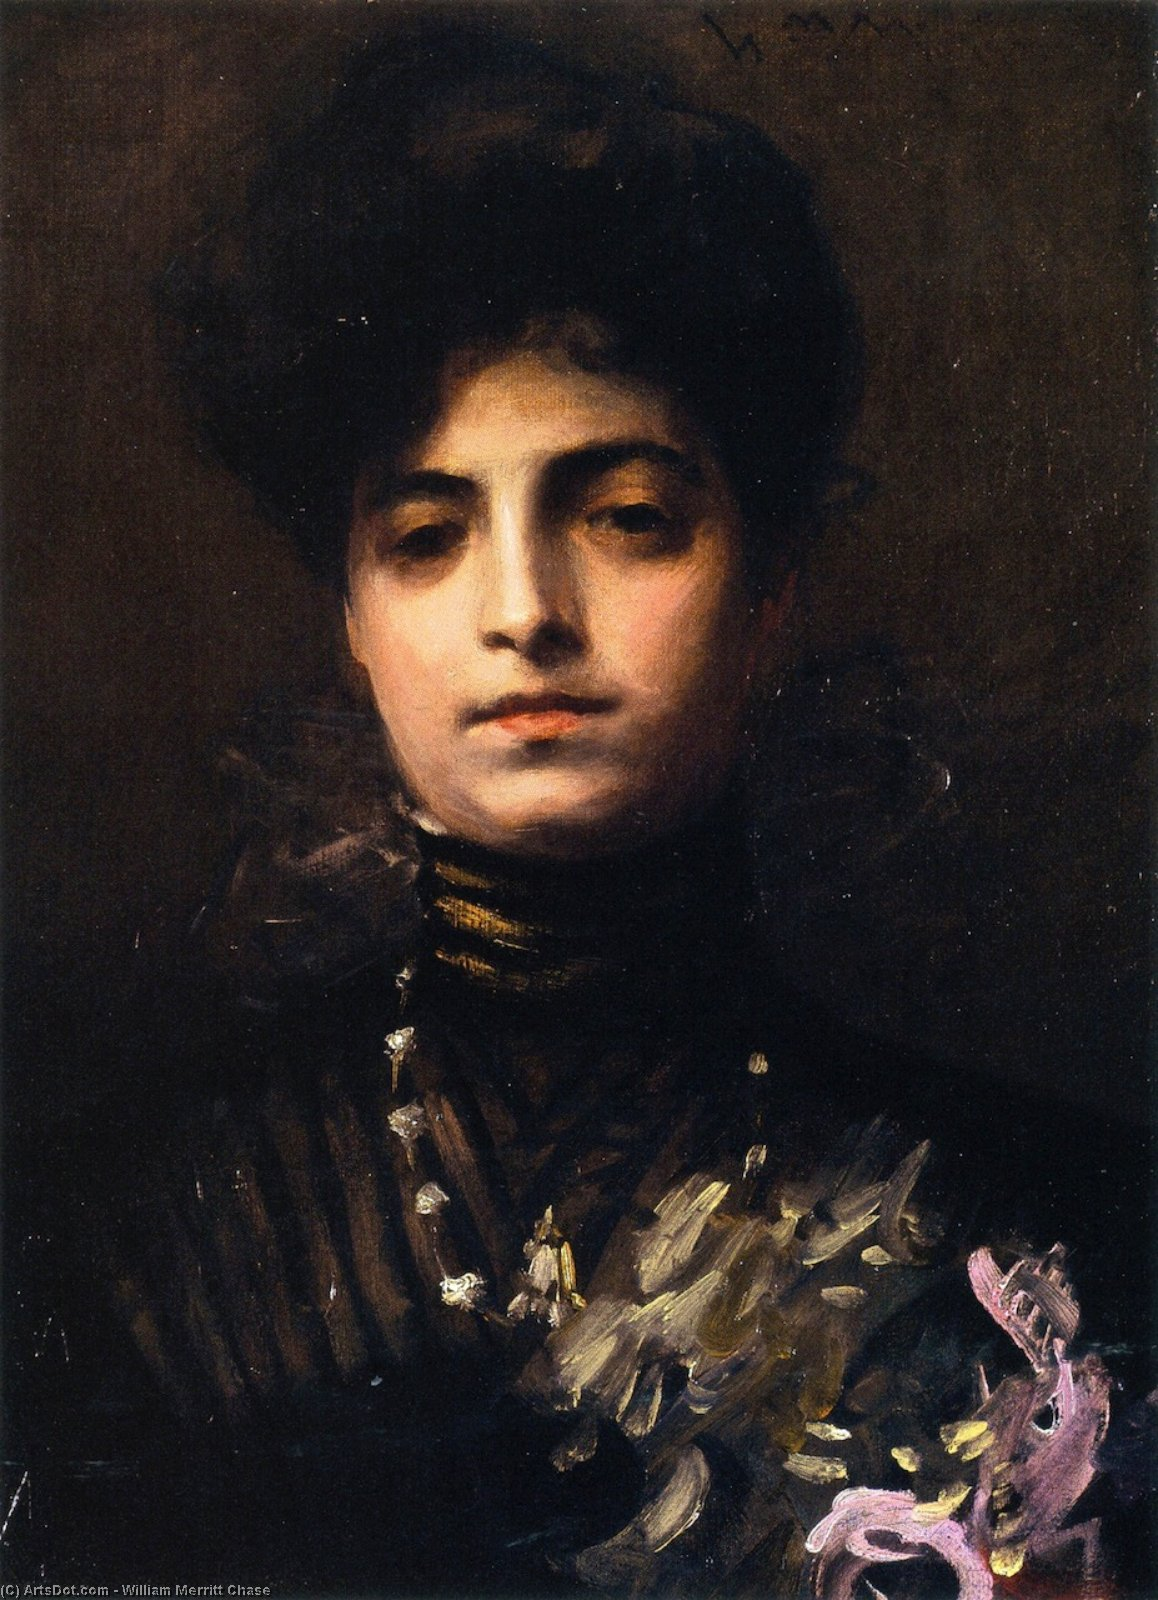 夫人与兰花, 1903 通过 William Merritt Chase (1849-1916, United States) | ArtsDot.com